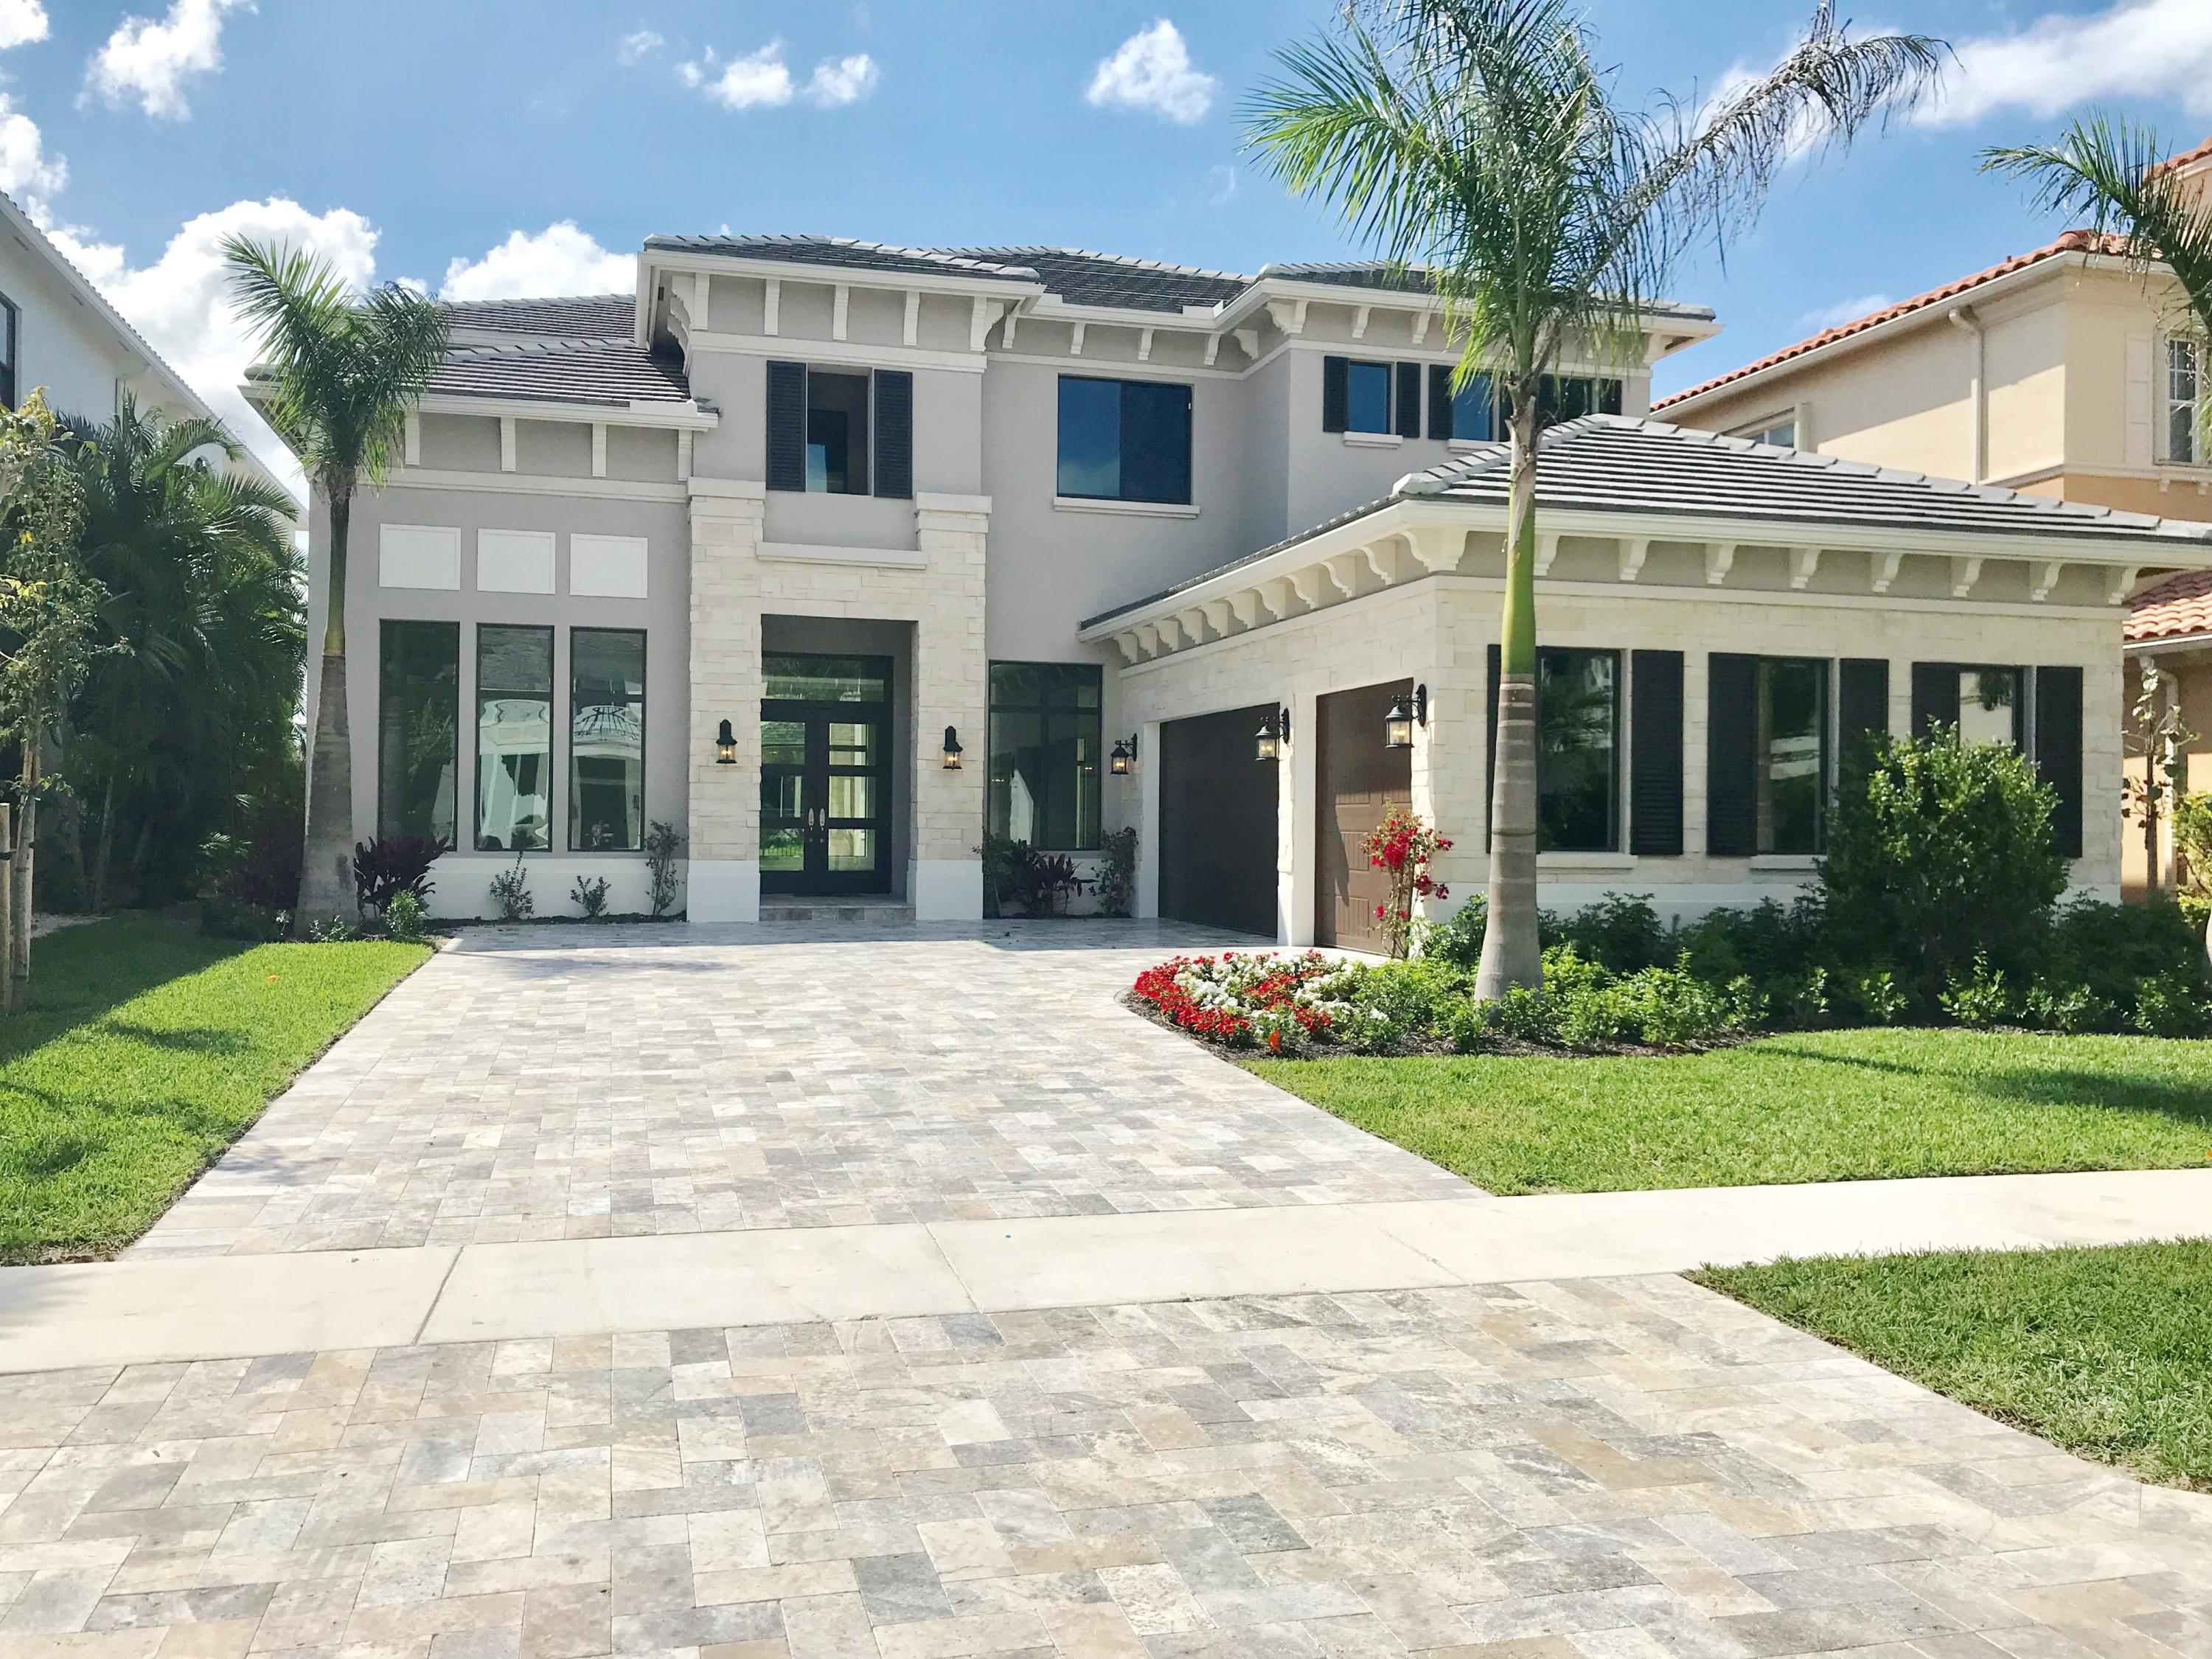 Home for sale in OAKS AT BOCA RATON 8 Boca Raton Florida